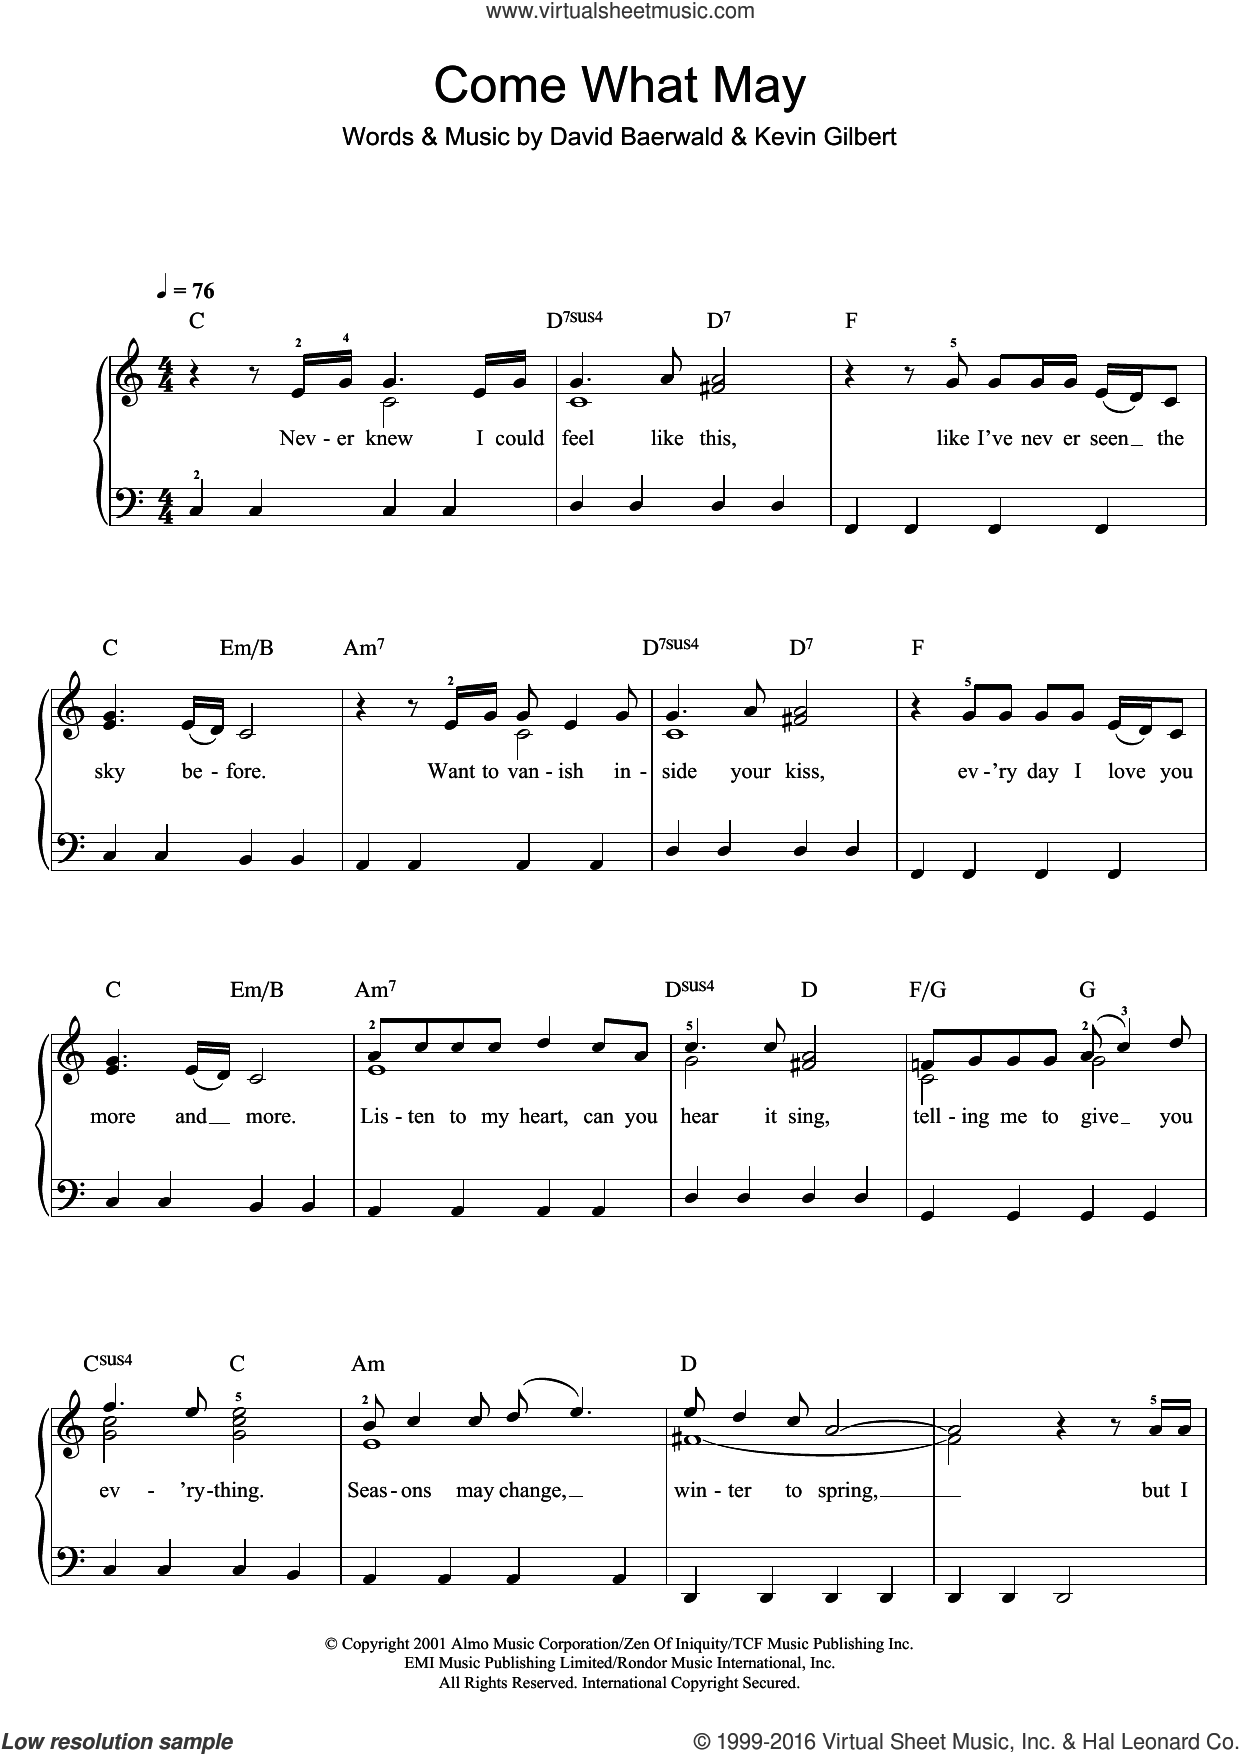 Come What May (from Moulin Rouge) sheet music for piano solo (beginners) by Nicole Kidman, Ewan McGregor, Nicole Kidman & Ewan McGregor, David Baerwald and Kevin Gilbert, beginner piano (beginners)